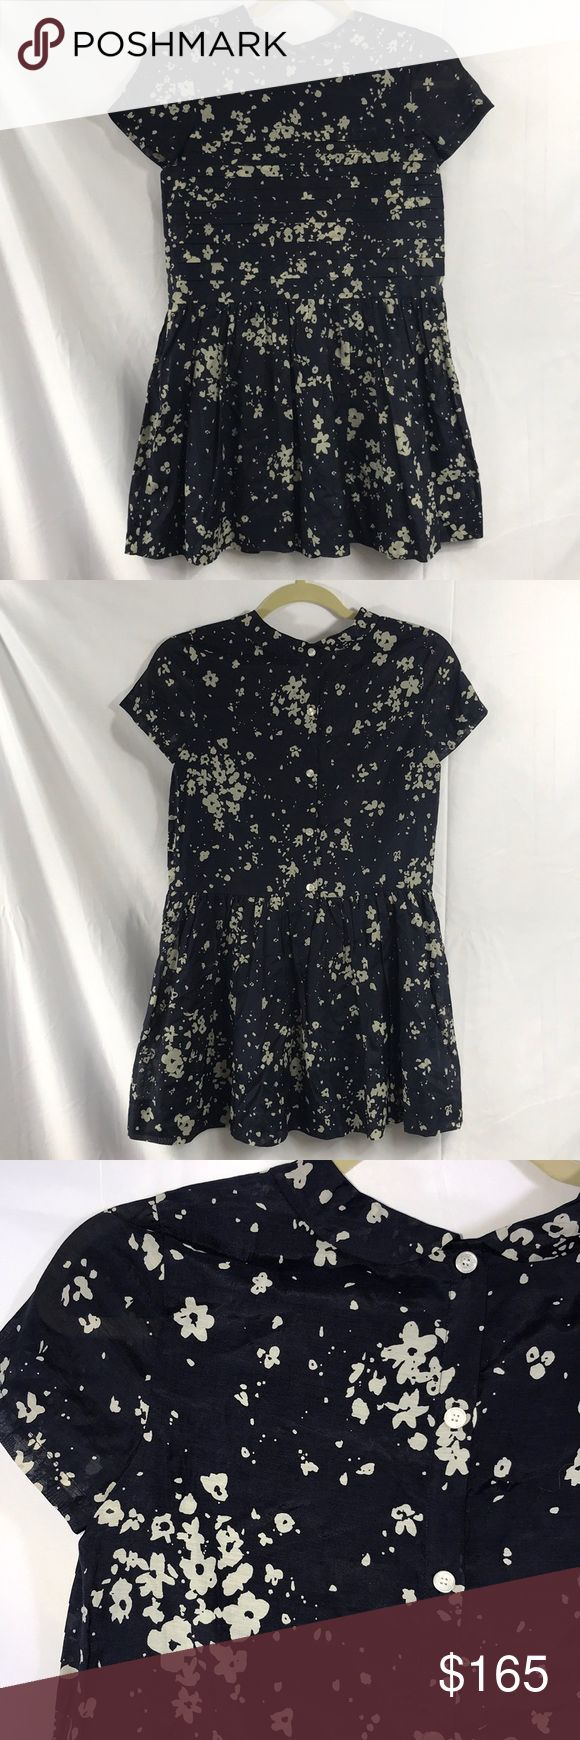 Burberry Paint Splatter Shirt Dress NEW WITH TAGS. 100% AUTHENTIC.   - Color: Navy/Beige - Mini Round Collar Design  - Splater Paint Print  - Dolman Cap Sleeves  - Back Button up  - Pleated flared skirt - Top: Horizontal Pleated Design - Lined  - Principal Material: 69% Cotton & 31 Silk  - Lining: 100% Cotton Burberry Dresses Casual